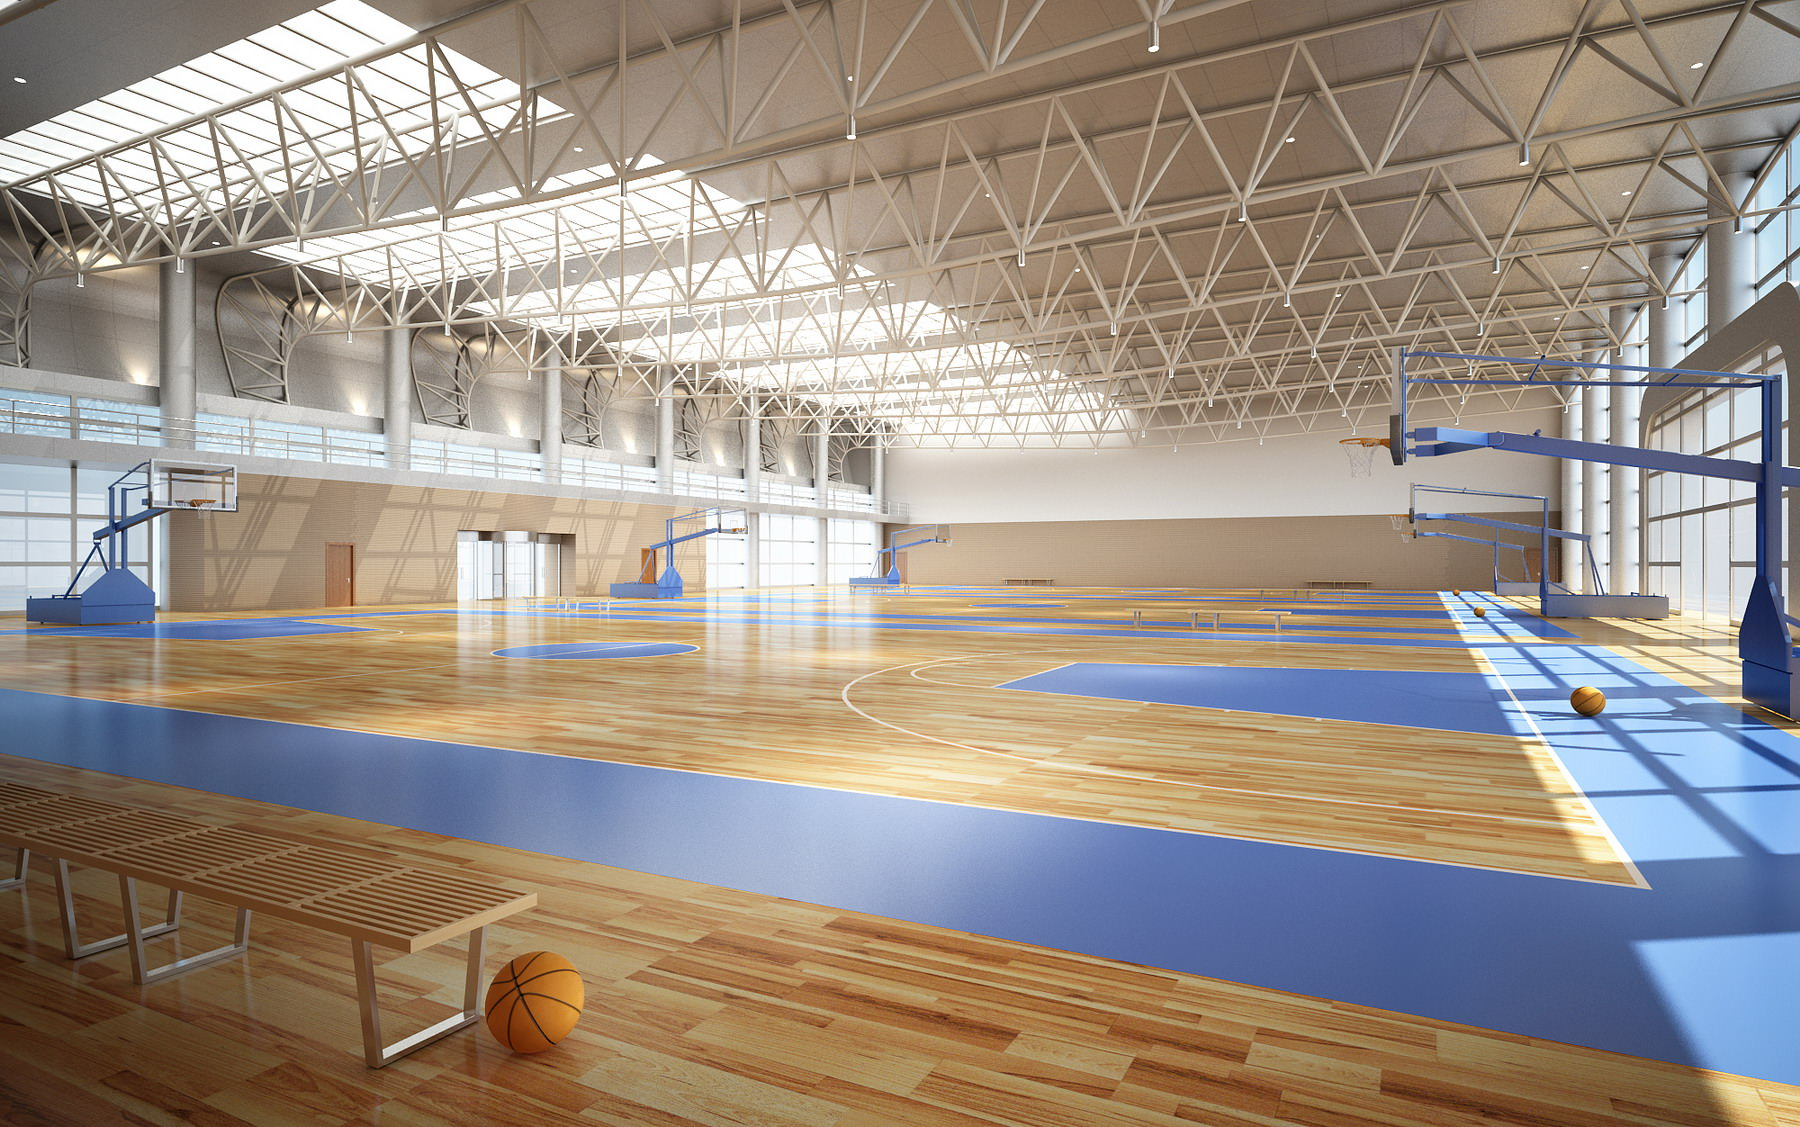 Broad Basketball Arena With Multiple Courts 3d Model Max